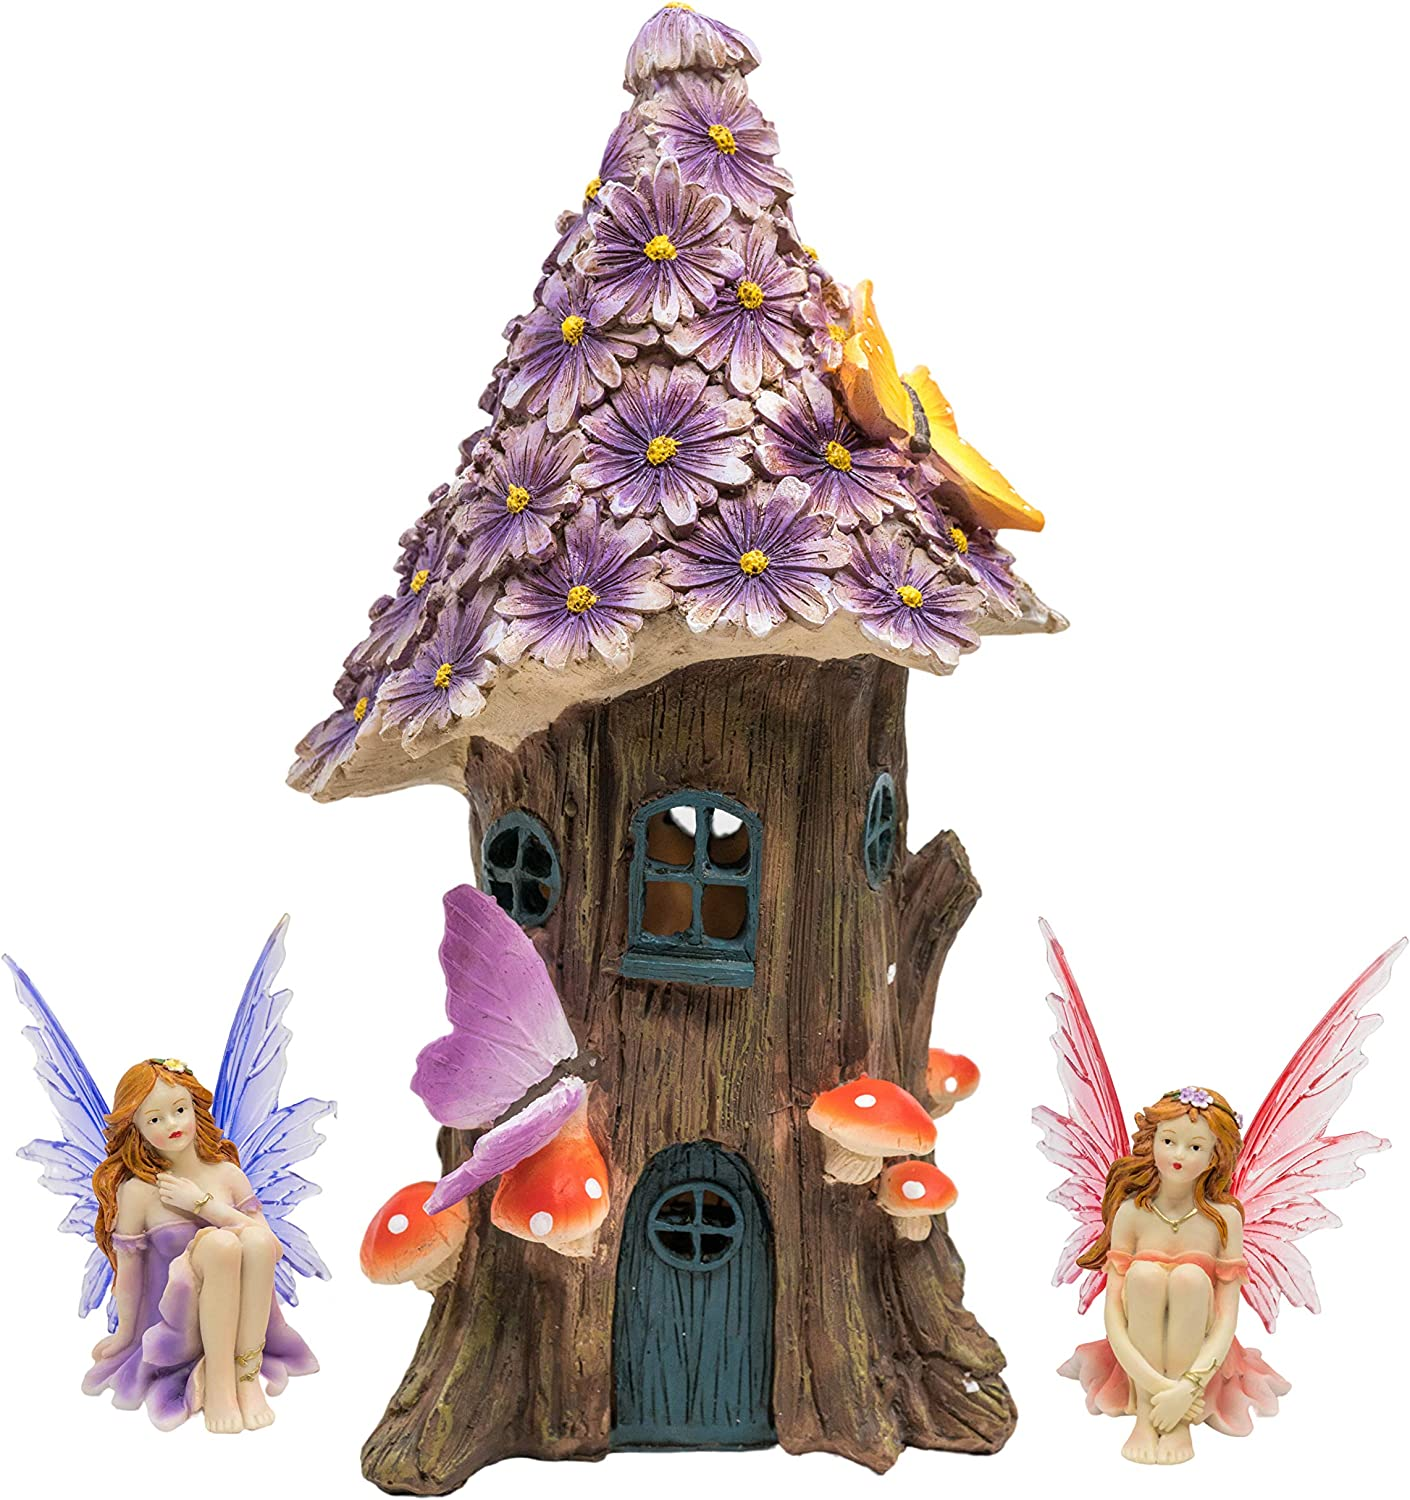 Solar Fairy House Gift Set with Figurines - Flowers, Mushrooms, Butterflies & Magical Fairies - Outdoor Garden, Lawn & Patio Décor with Glow in The Dark LED Lights – Mini Resin Statues and Sculptures